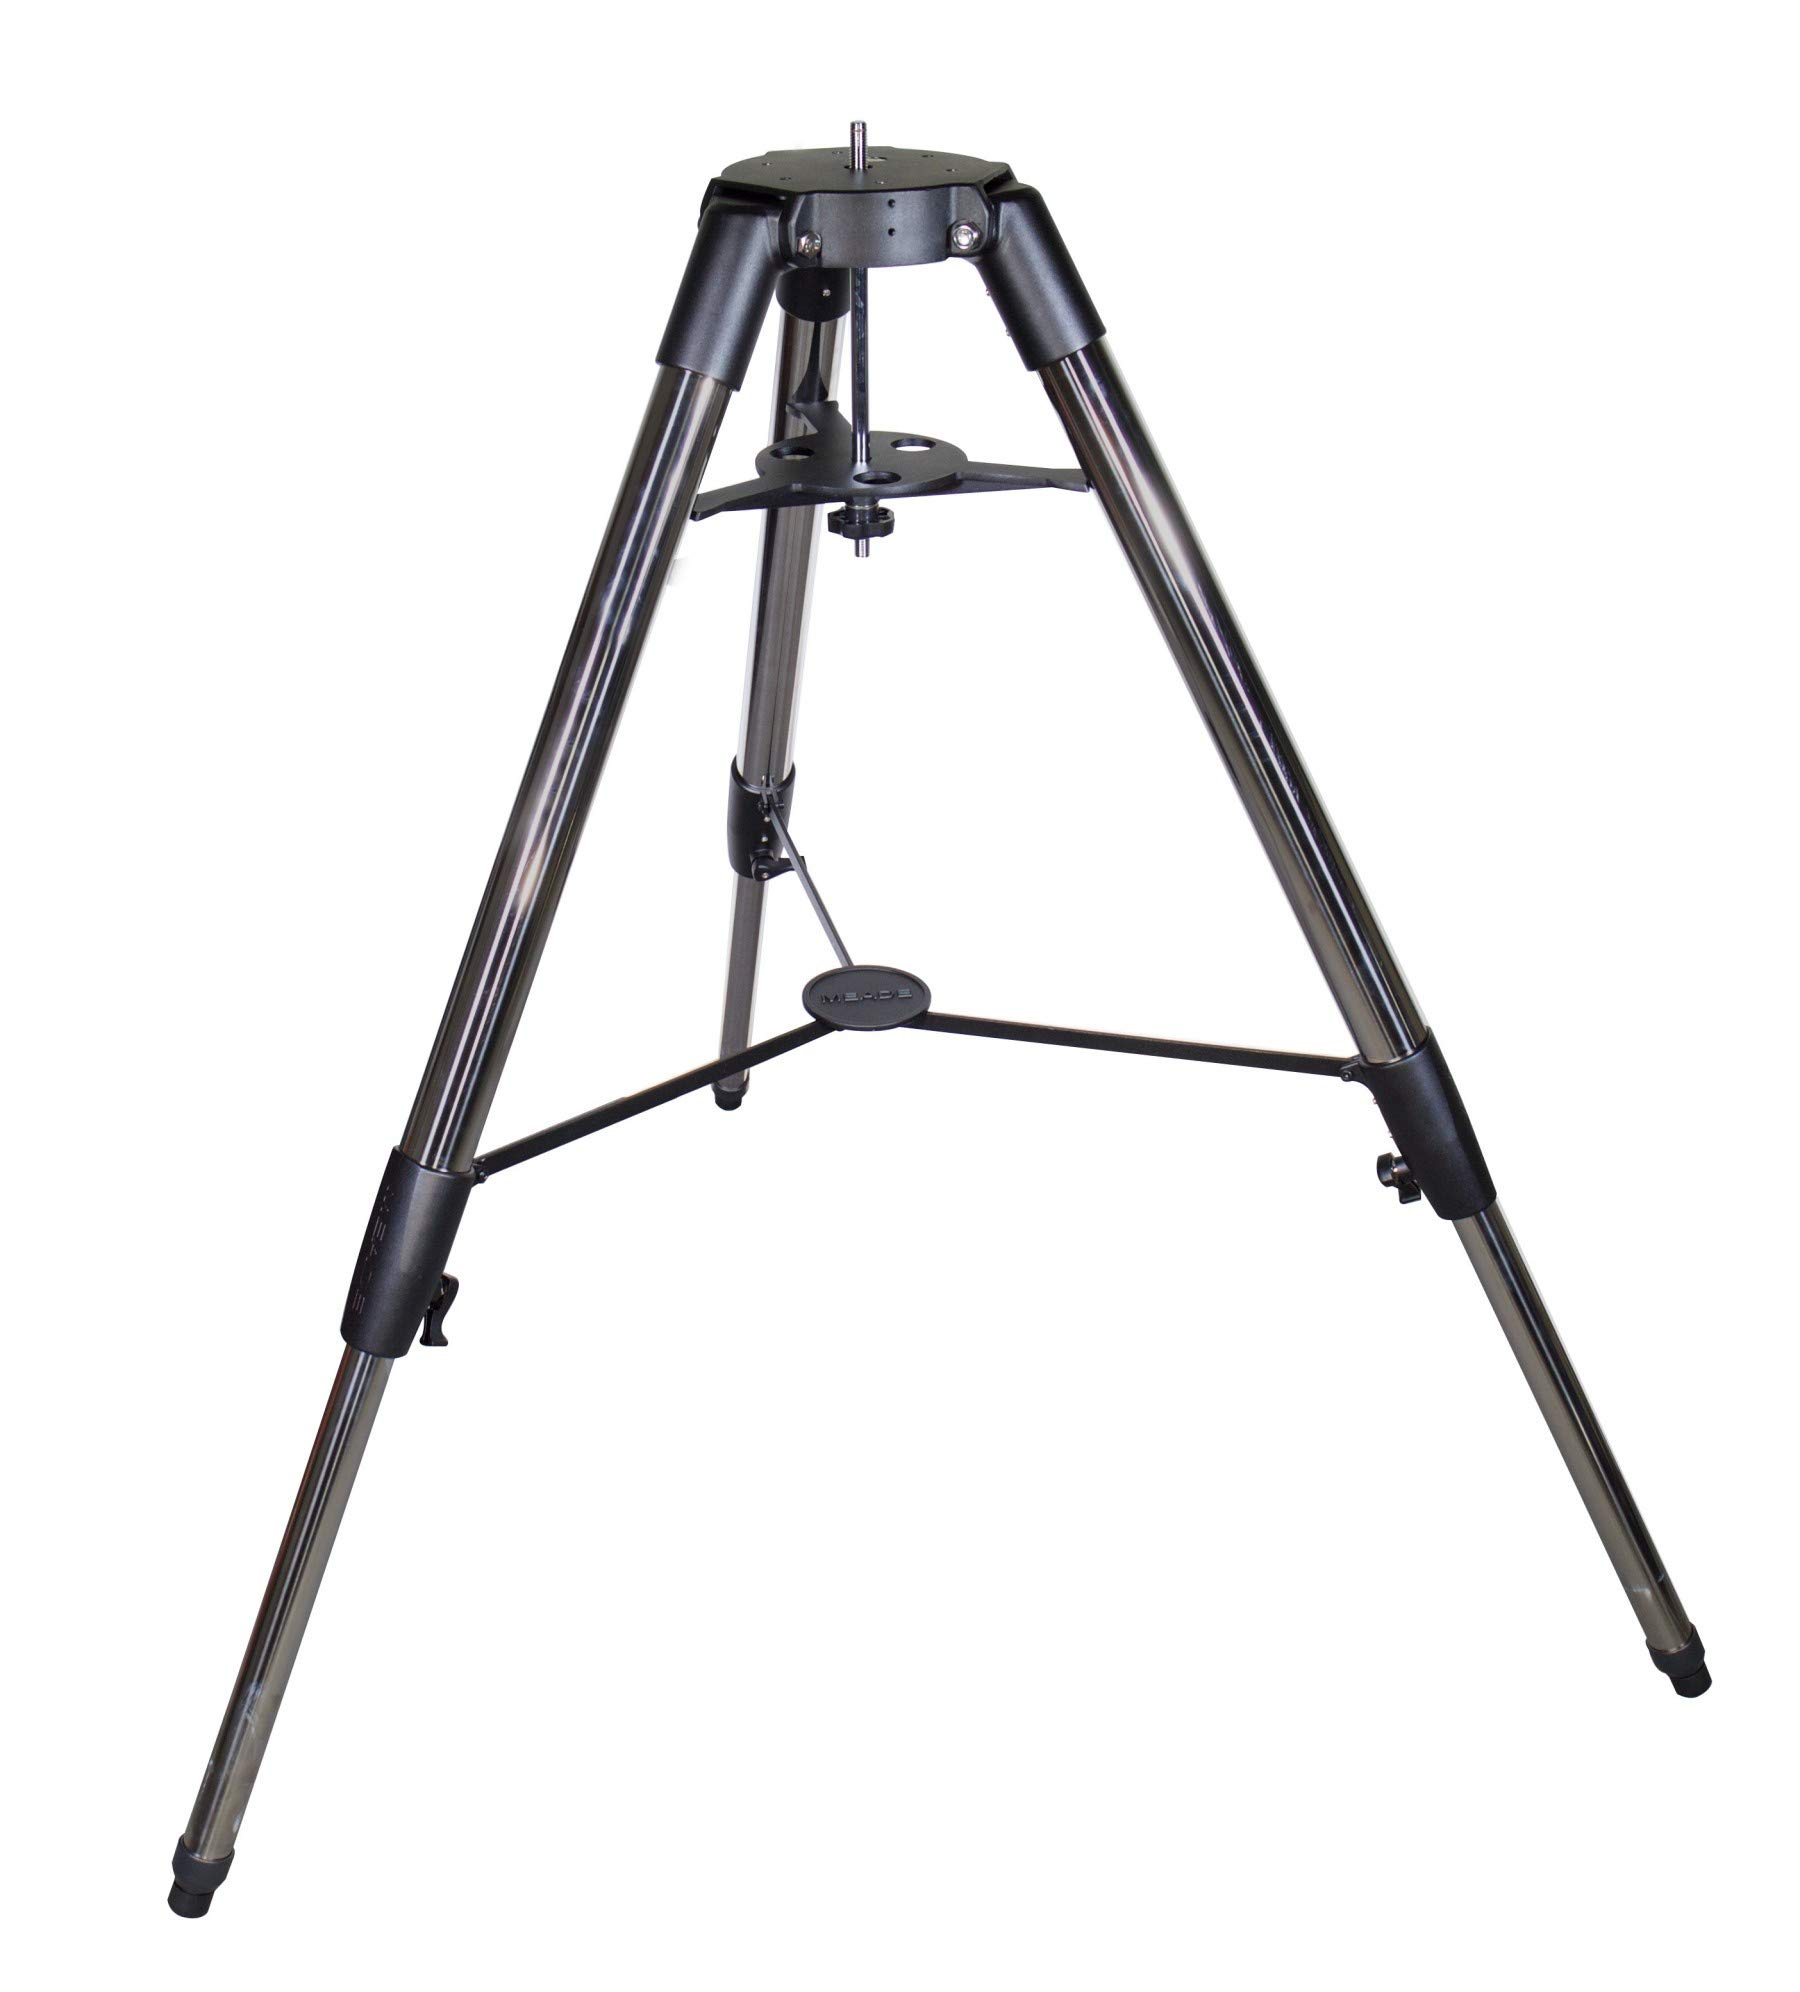 Meade Instruments 07020 Standard Field Tripod for 8'' & 10'' LX90 LX200 Telescopes by Meade Instruments